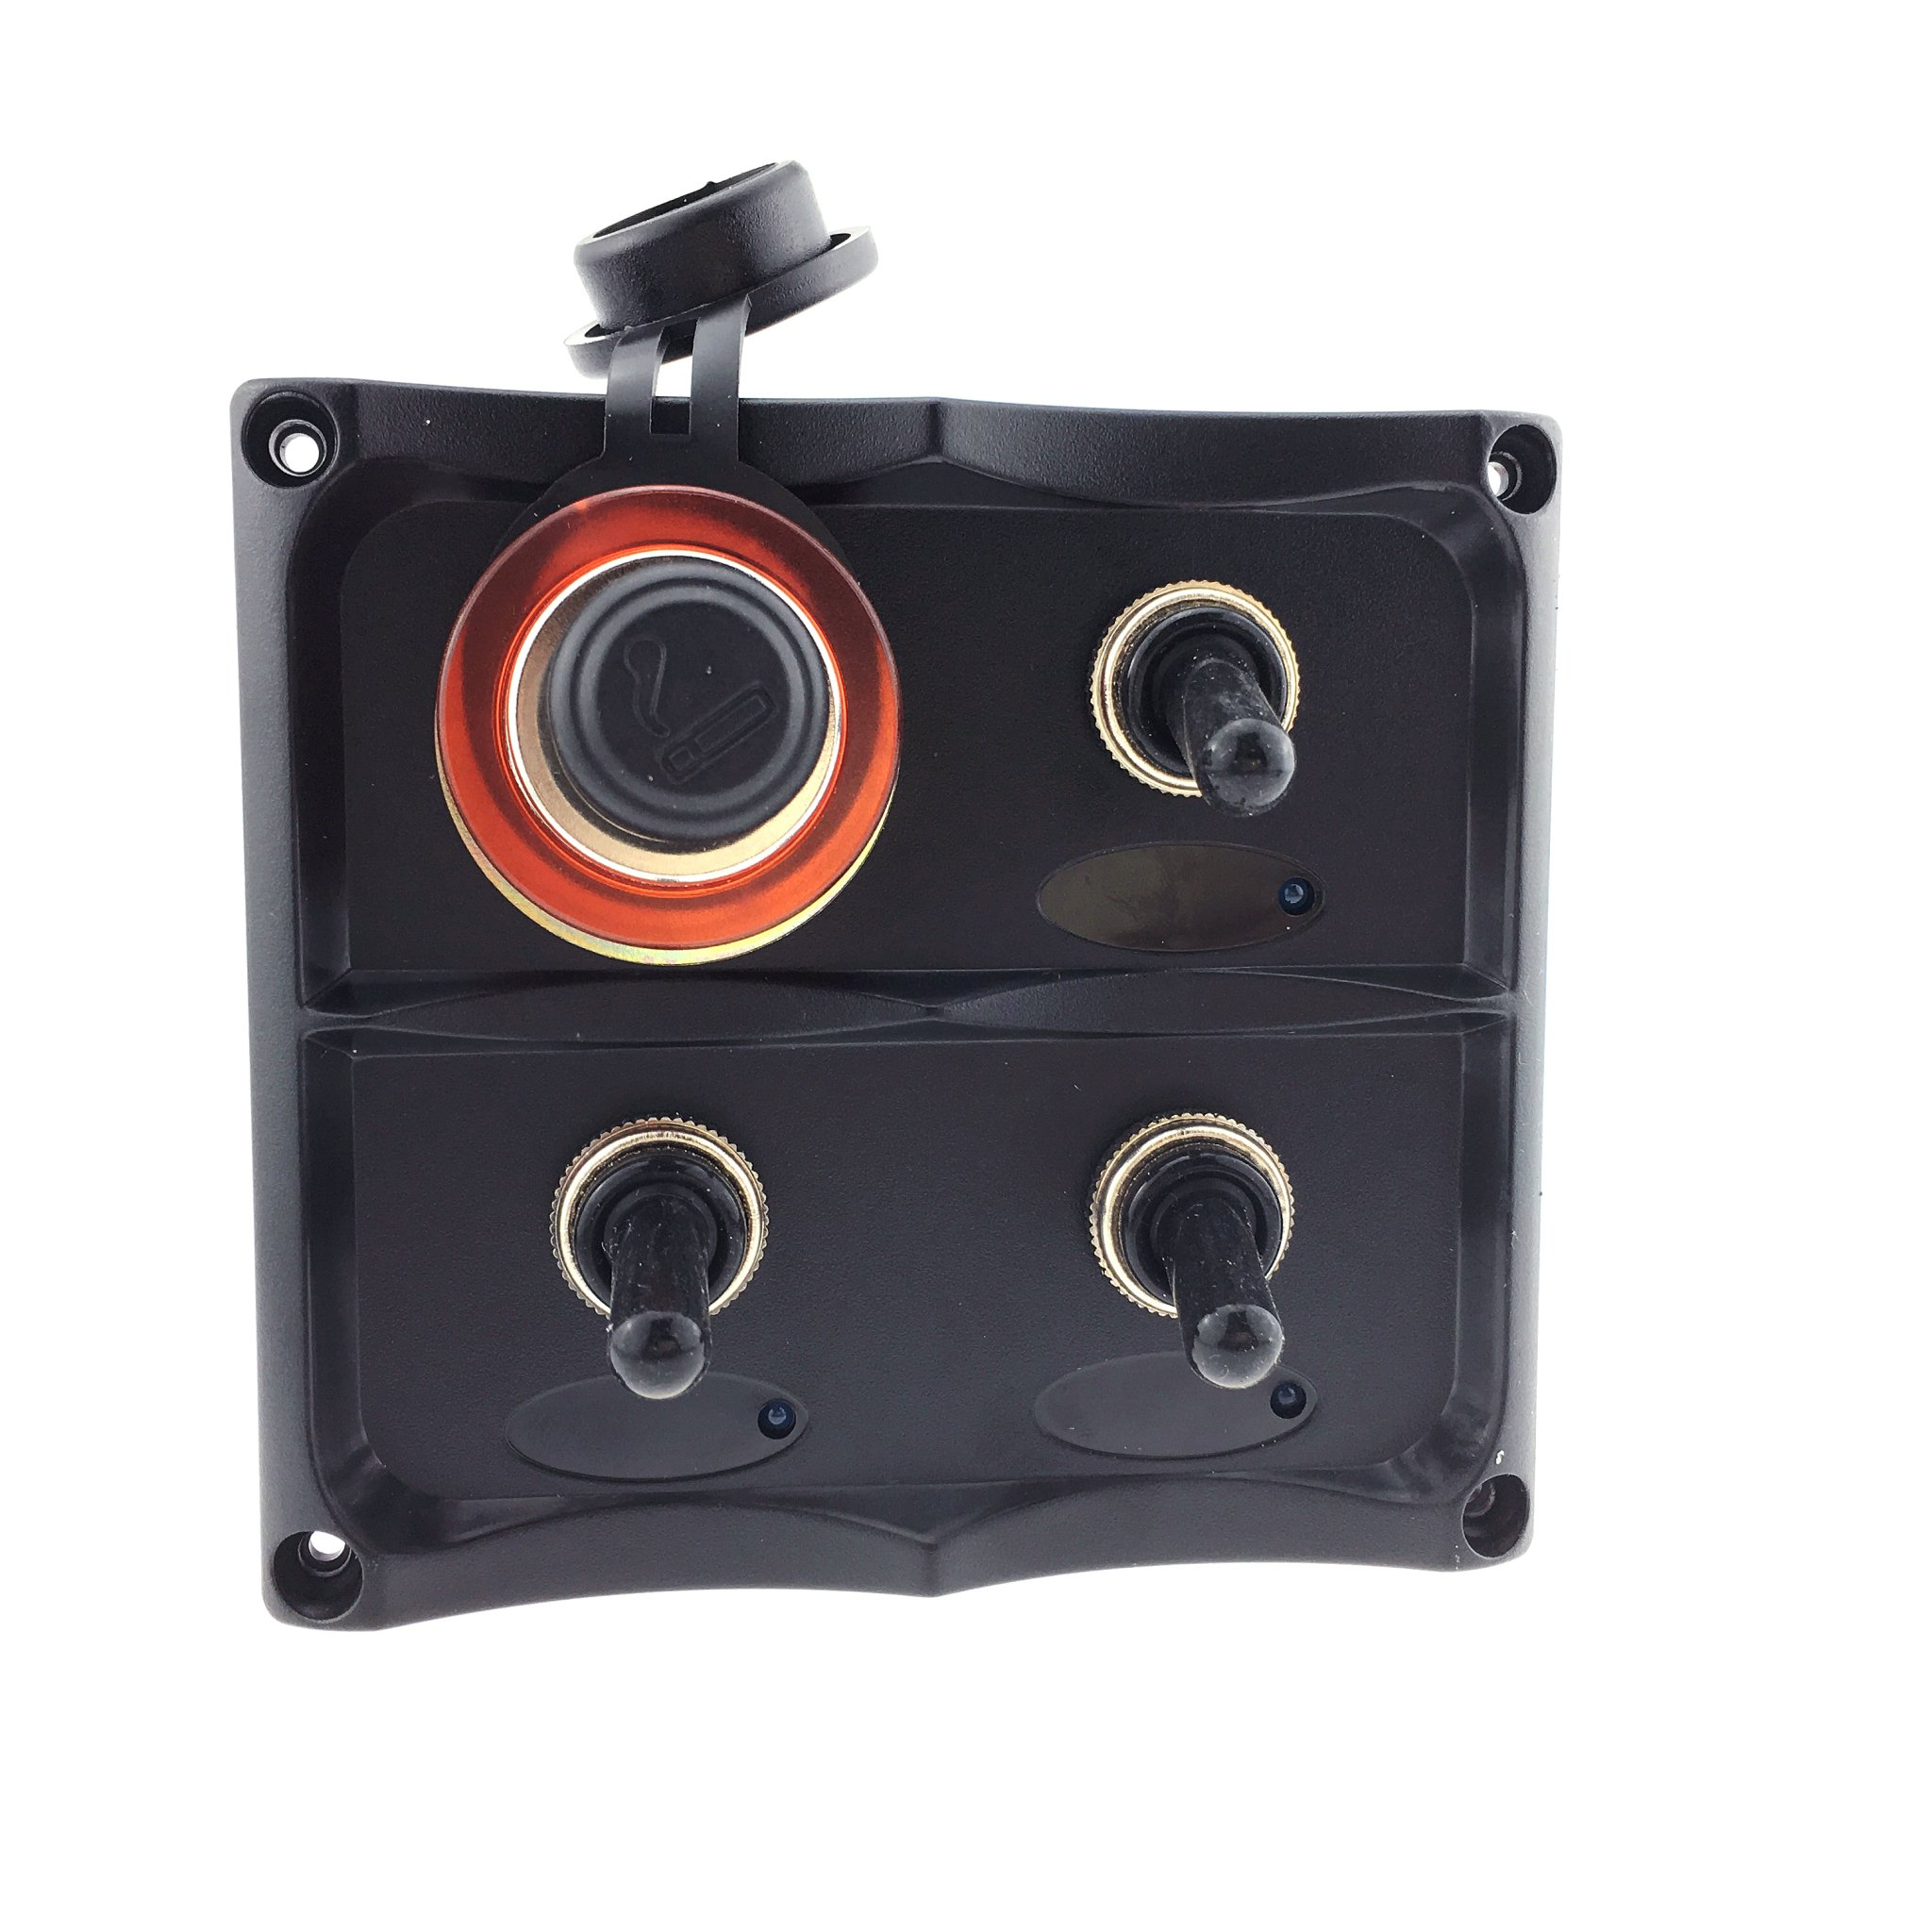 Iztoss Marine Electric 3 Gang Led Toggle Switch Panel With 1 Cigarette lighter plug for Boat truck and Rv by IZTOSS